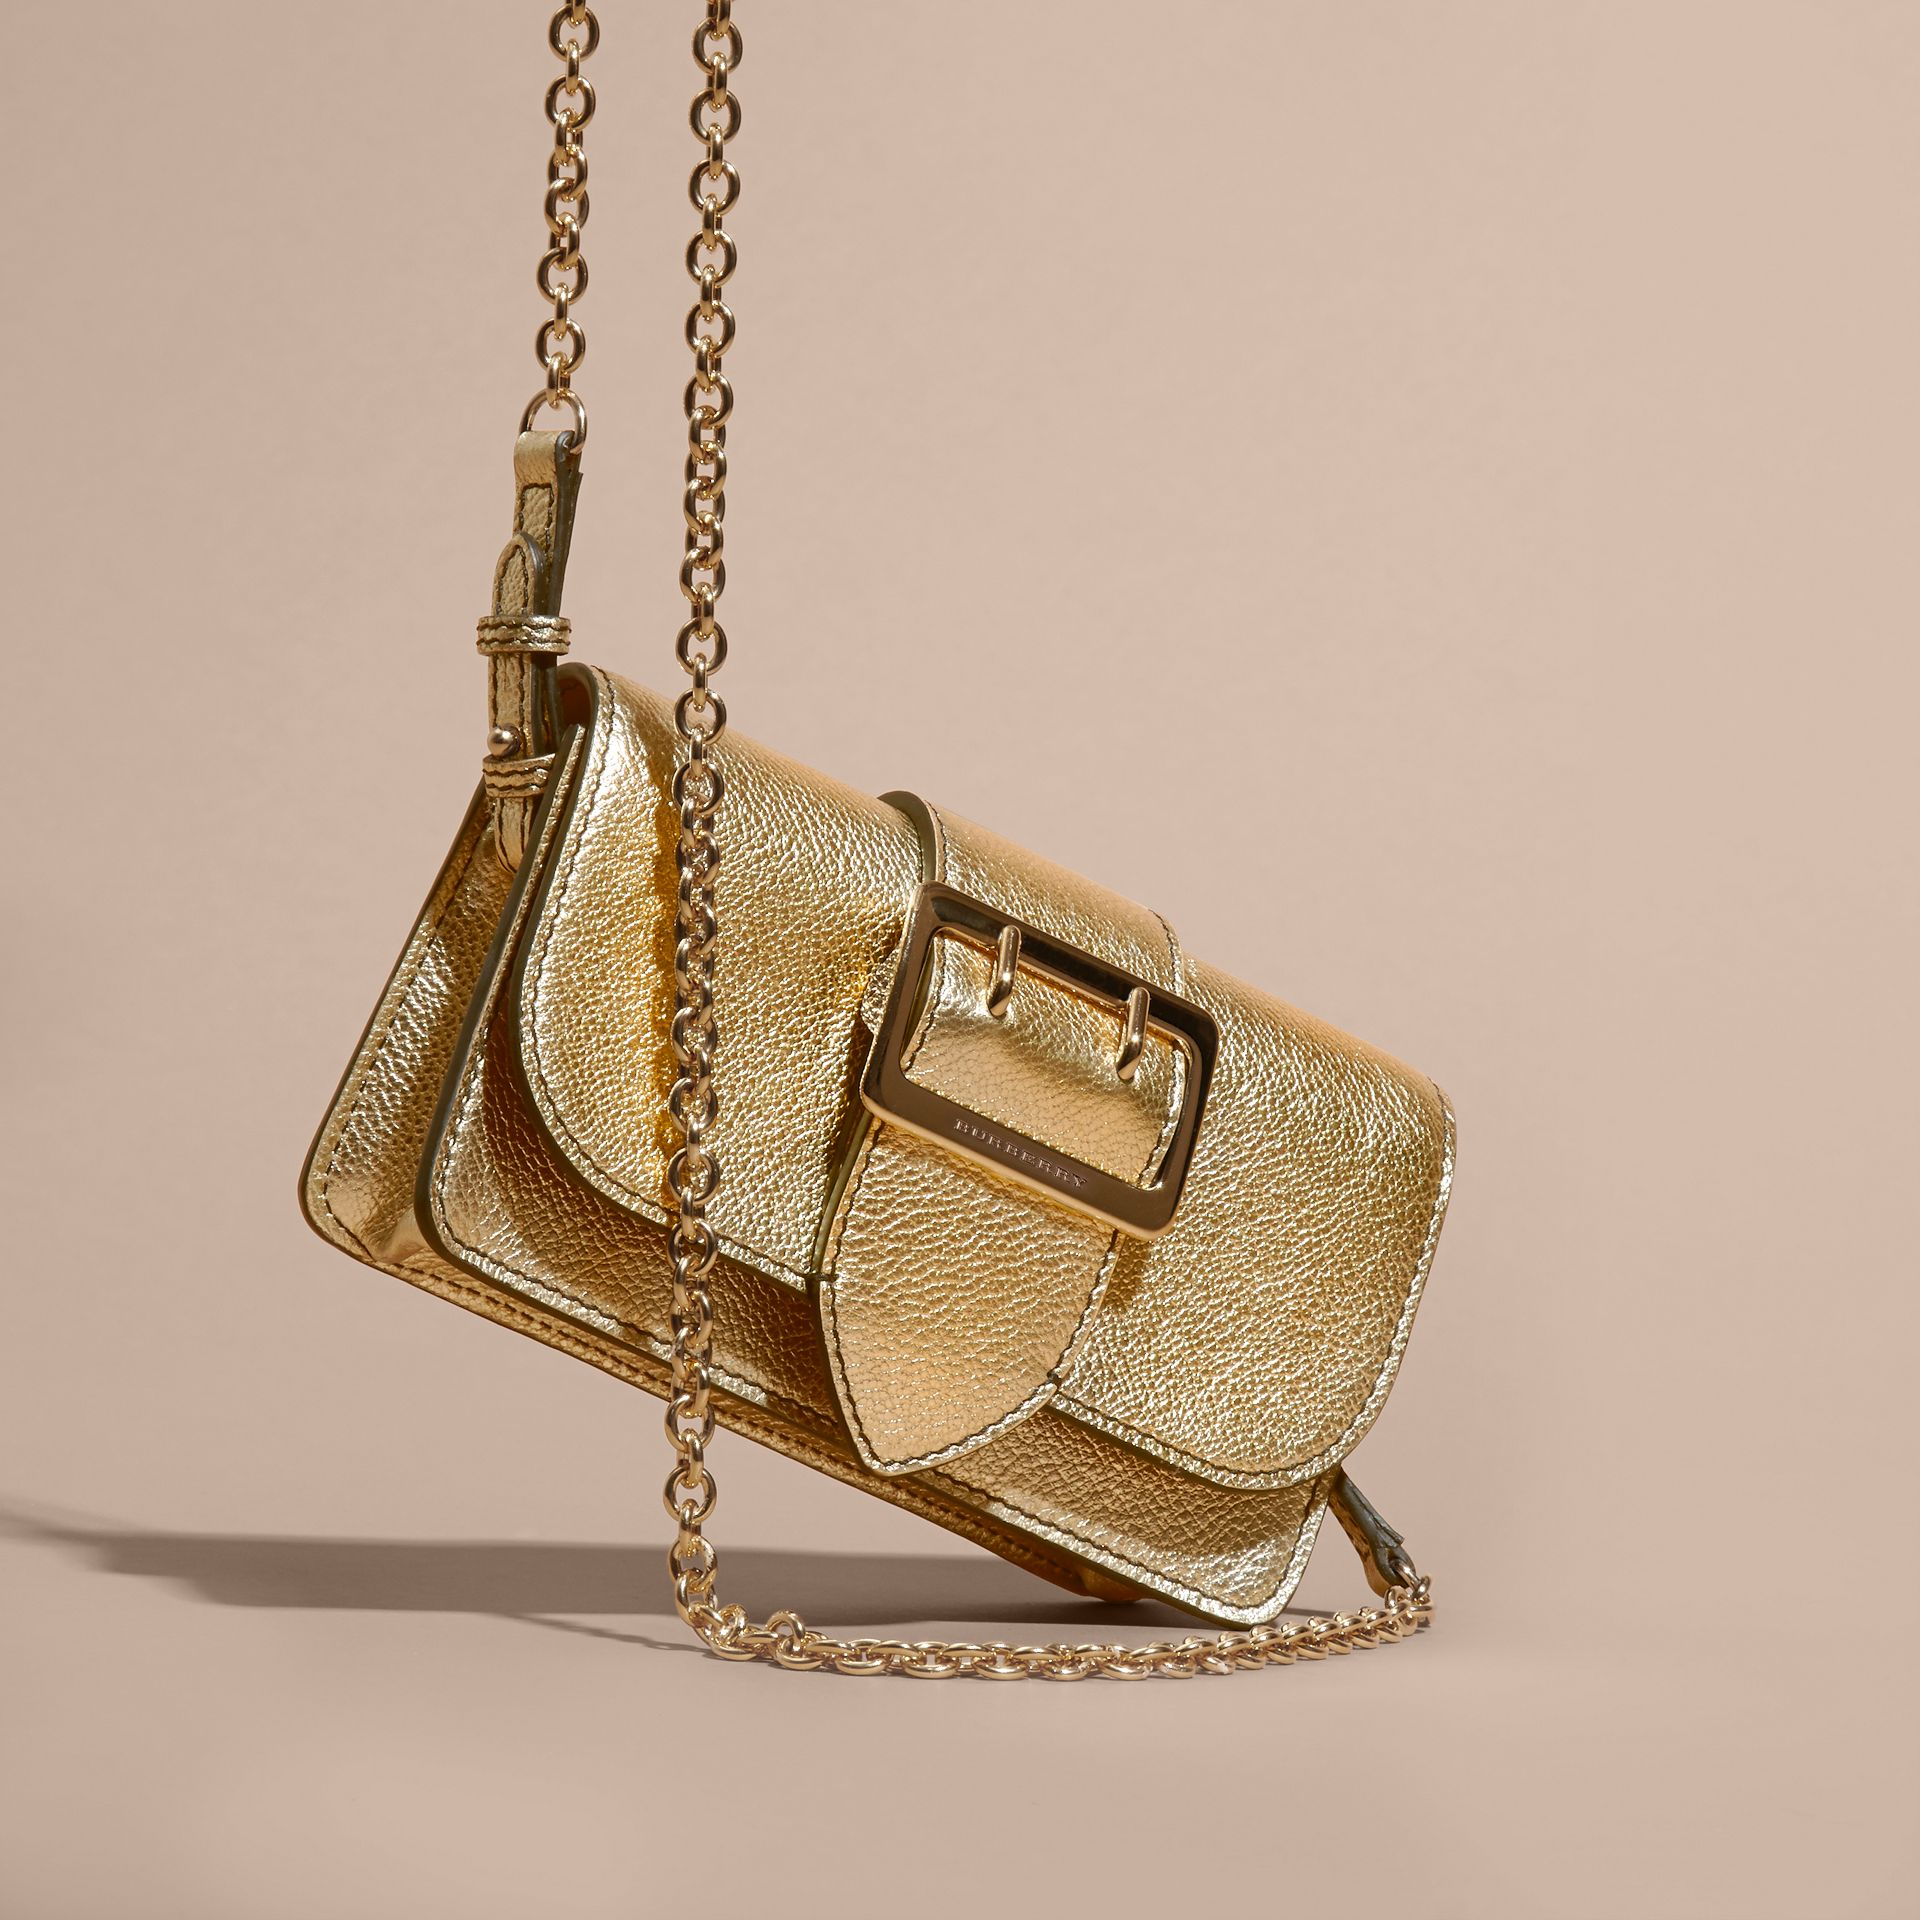 The Mini Buckle Bag in Metallic Grainy Leather in Gold - gallery image 8